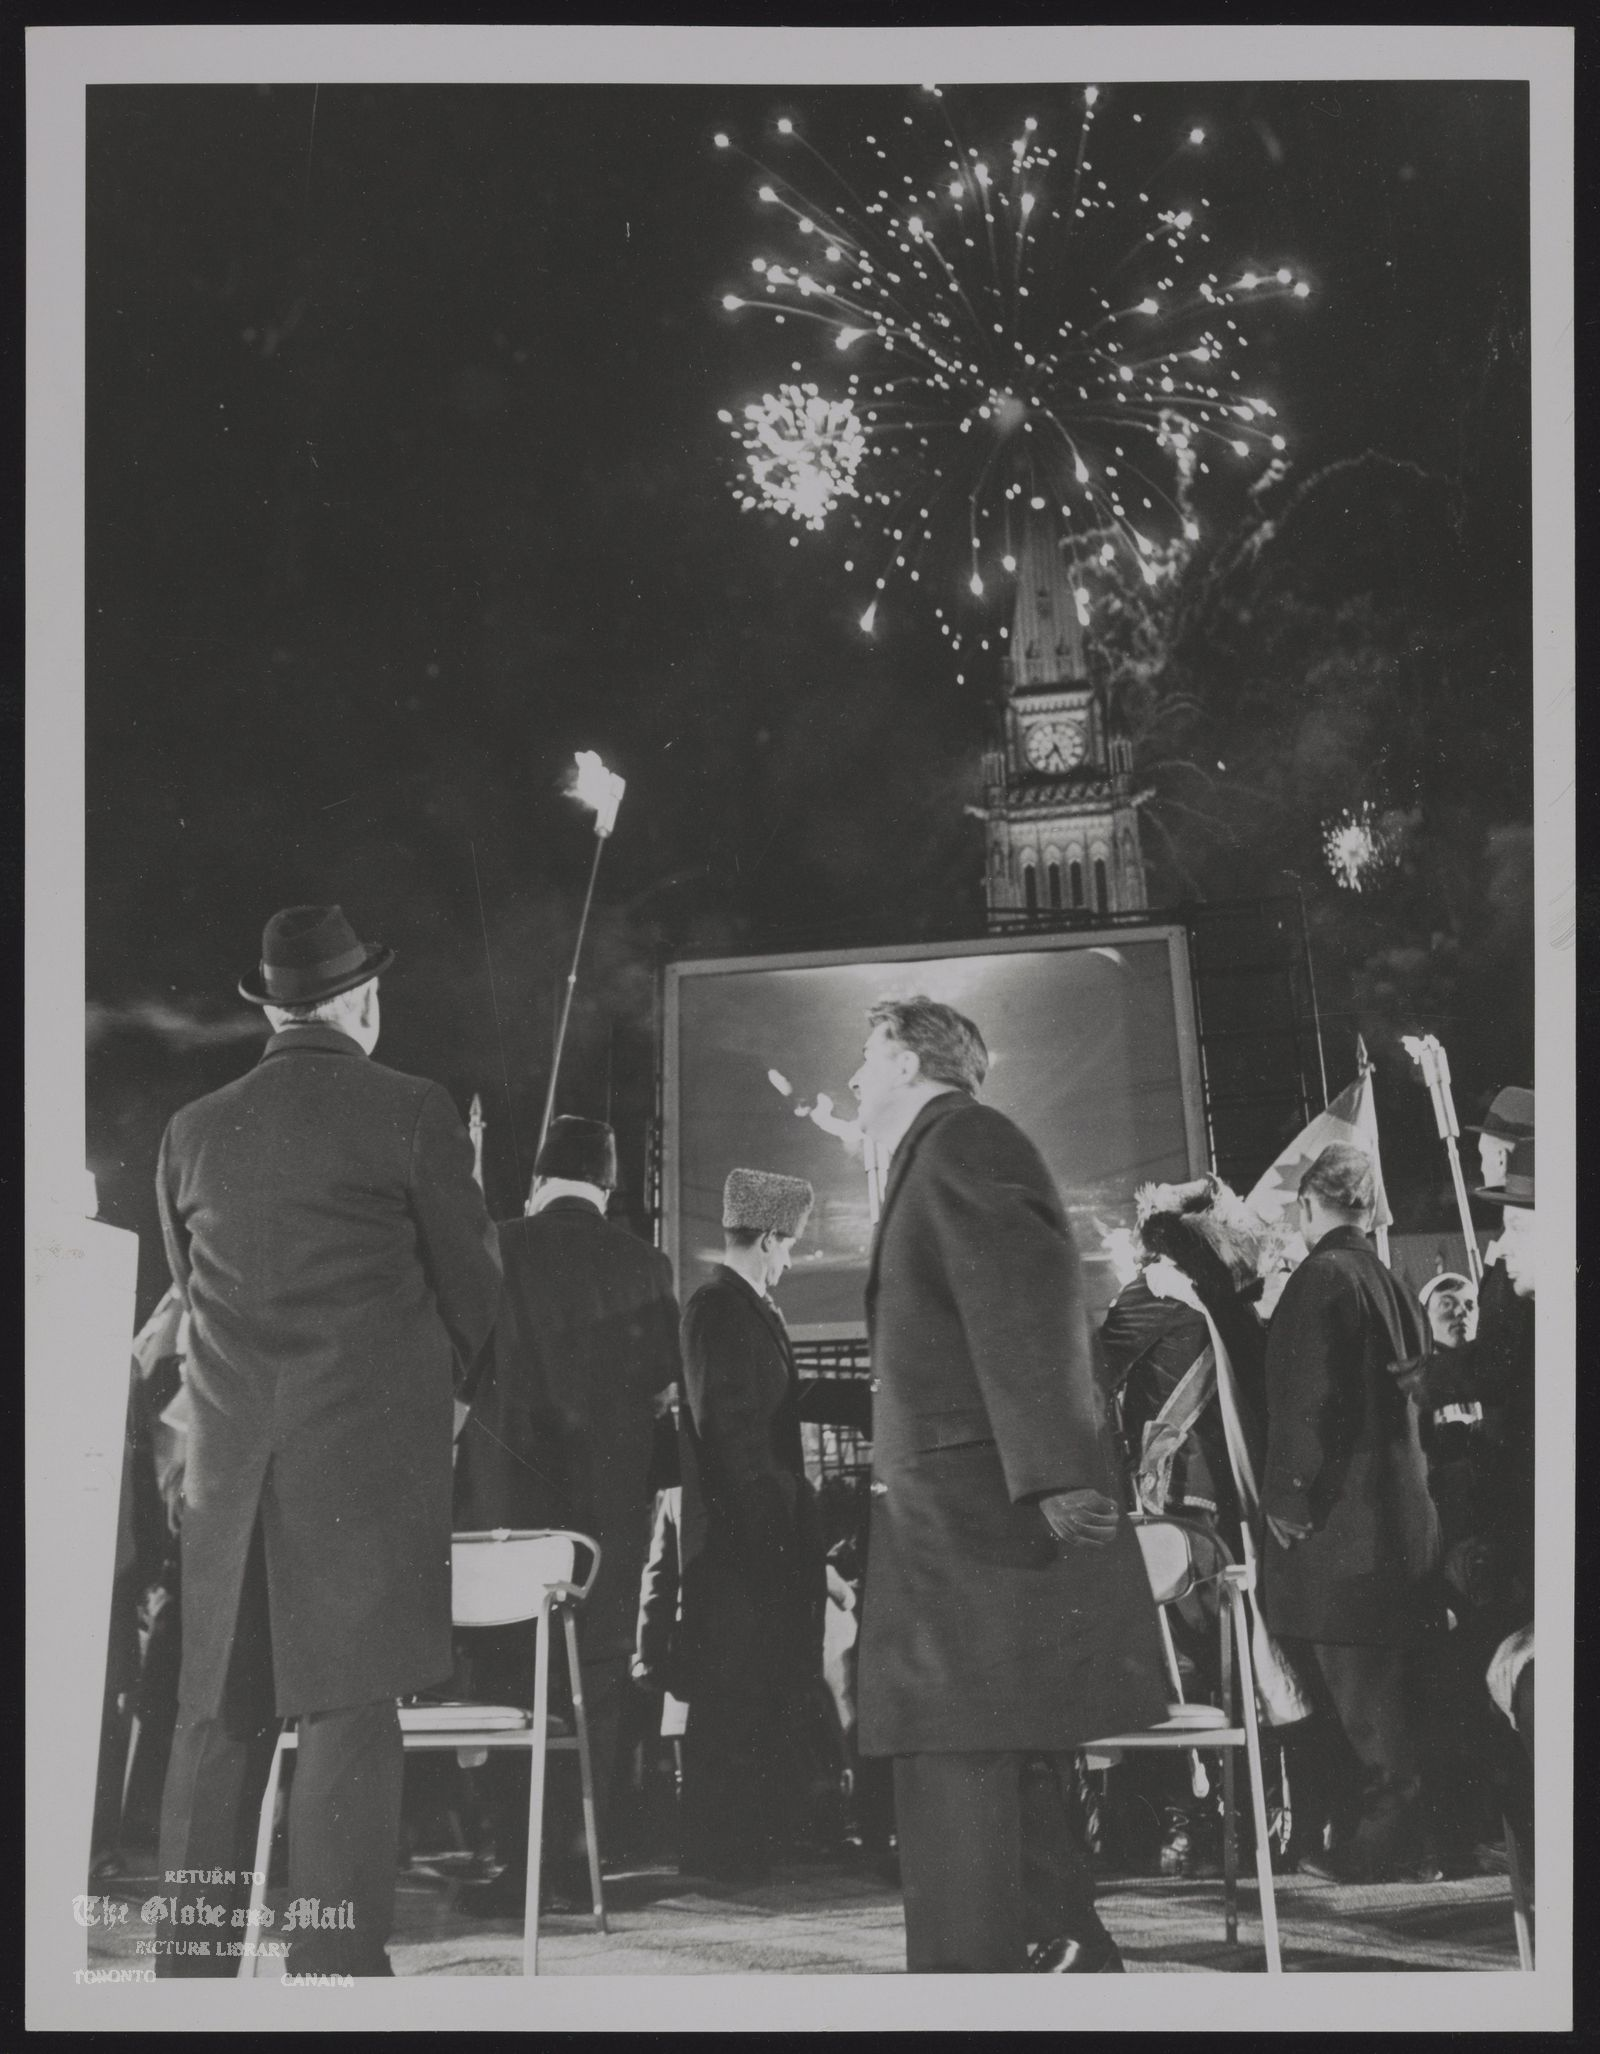 CANADA dominion Centennial Prime Minister Lester Pearson and Jean Marchand watch fireworks burst over Peace Tower in Centennial ceremony on Parliament Hill on New Year's Eve as Opposition Leader John Diefenbaker (extreme right) looks on.